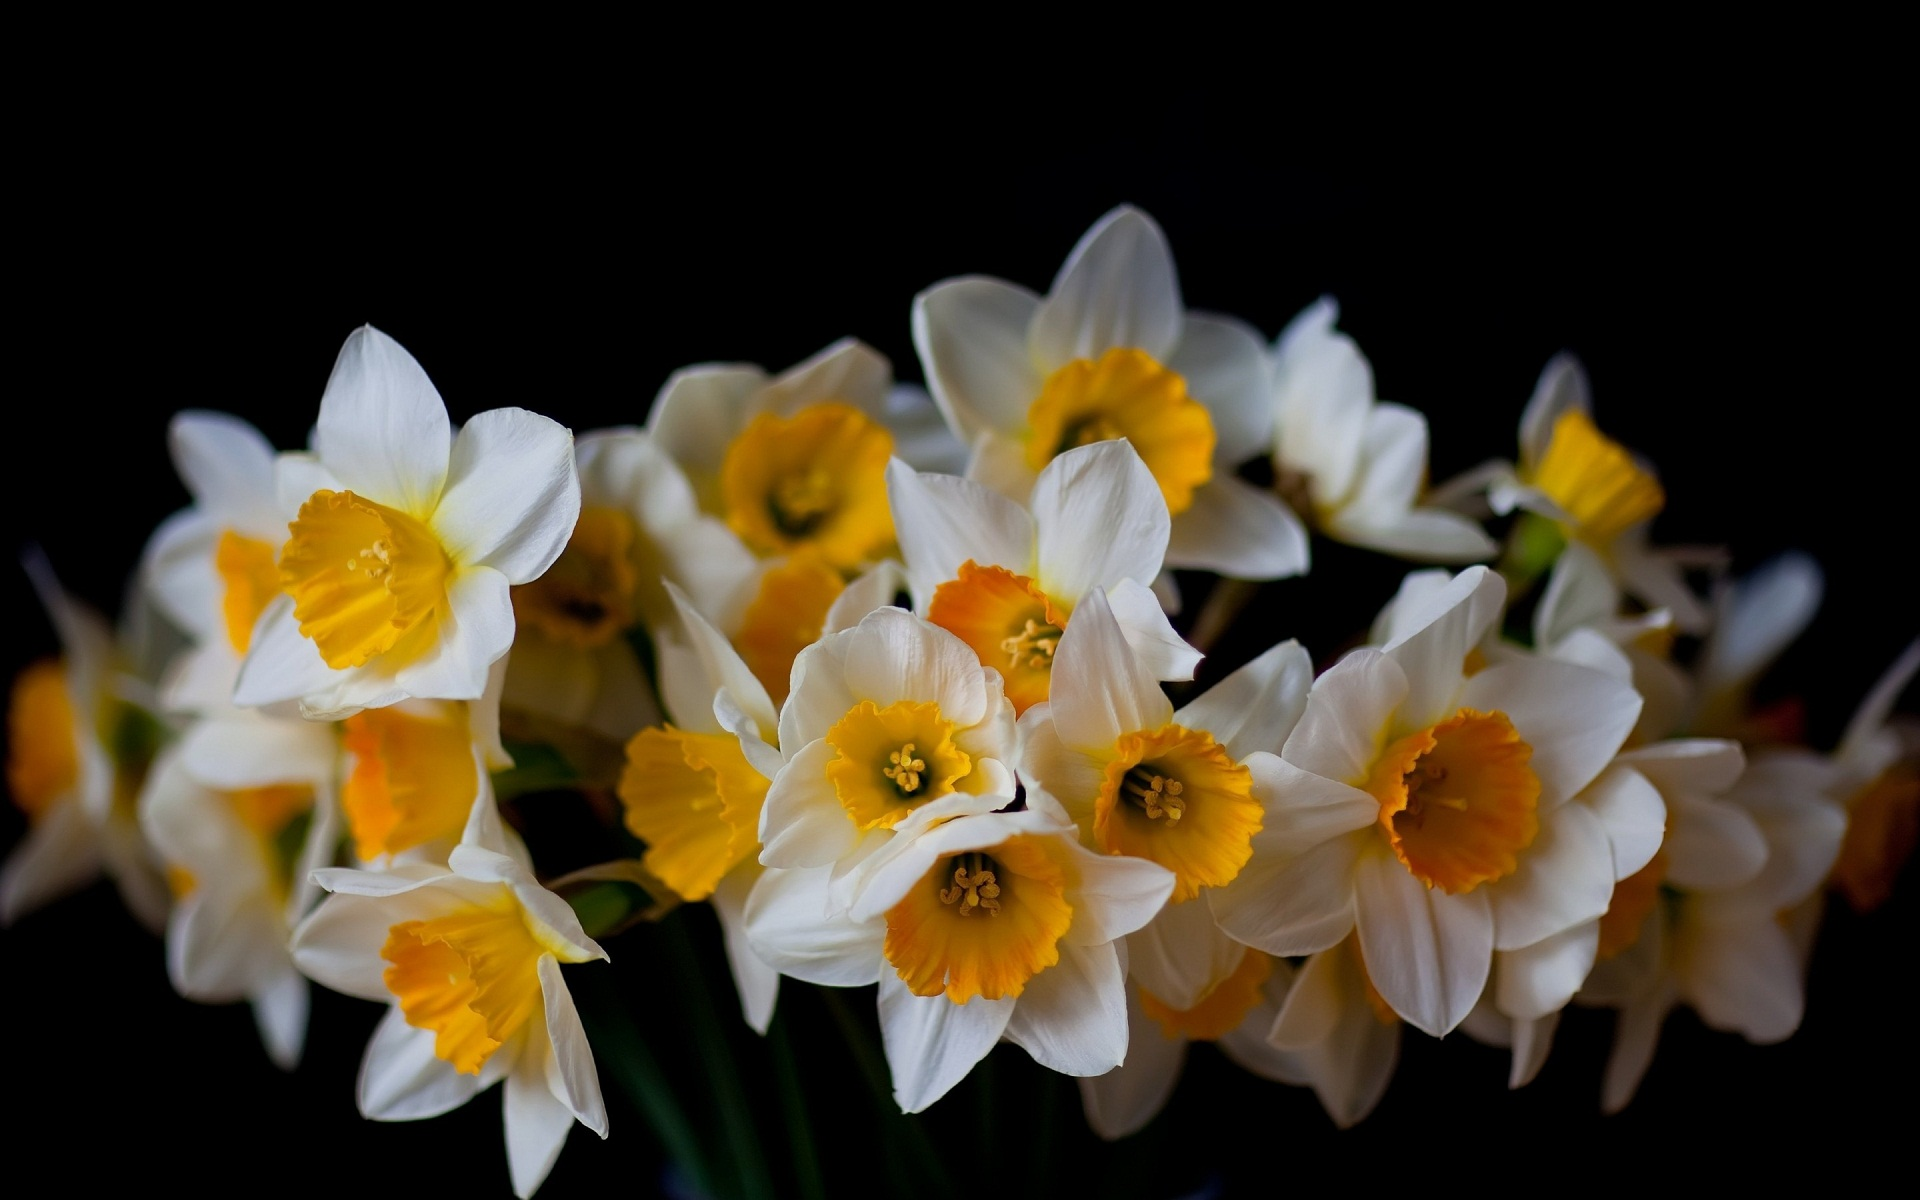 Daffodil Wallpaper #HYQ52HYQ